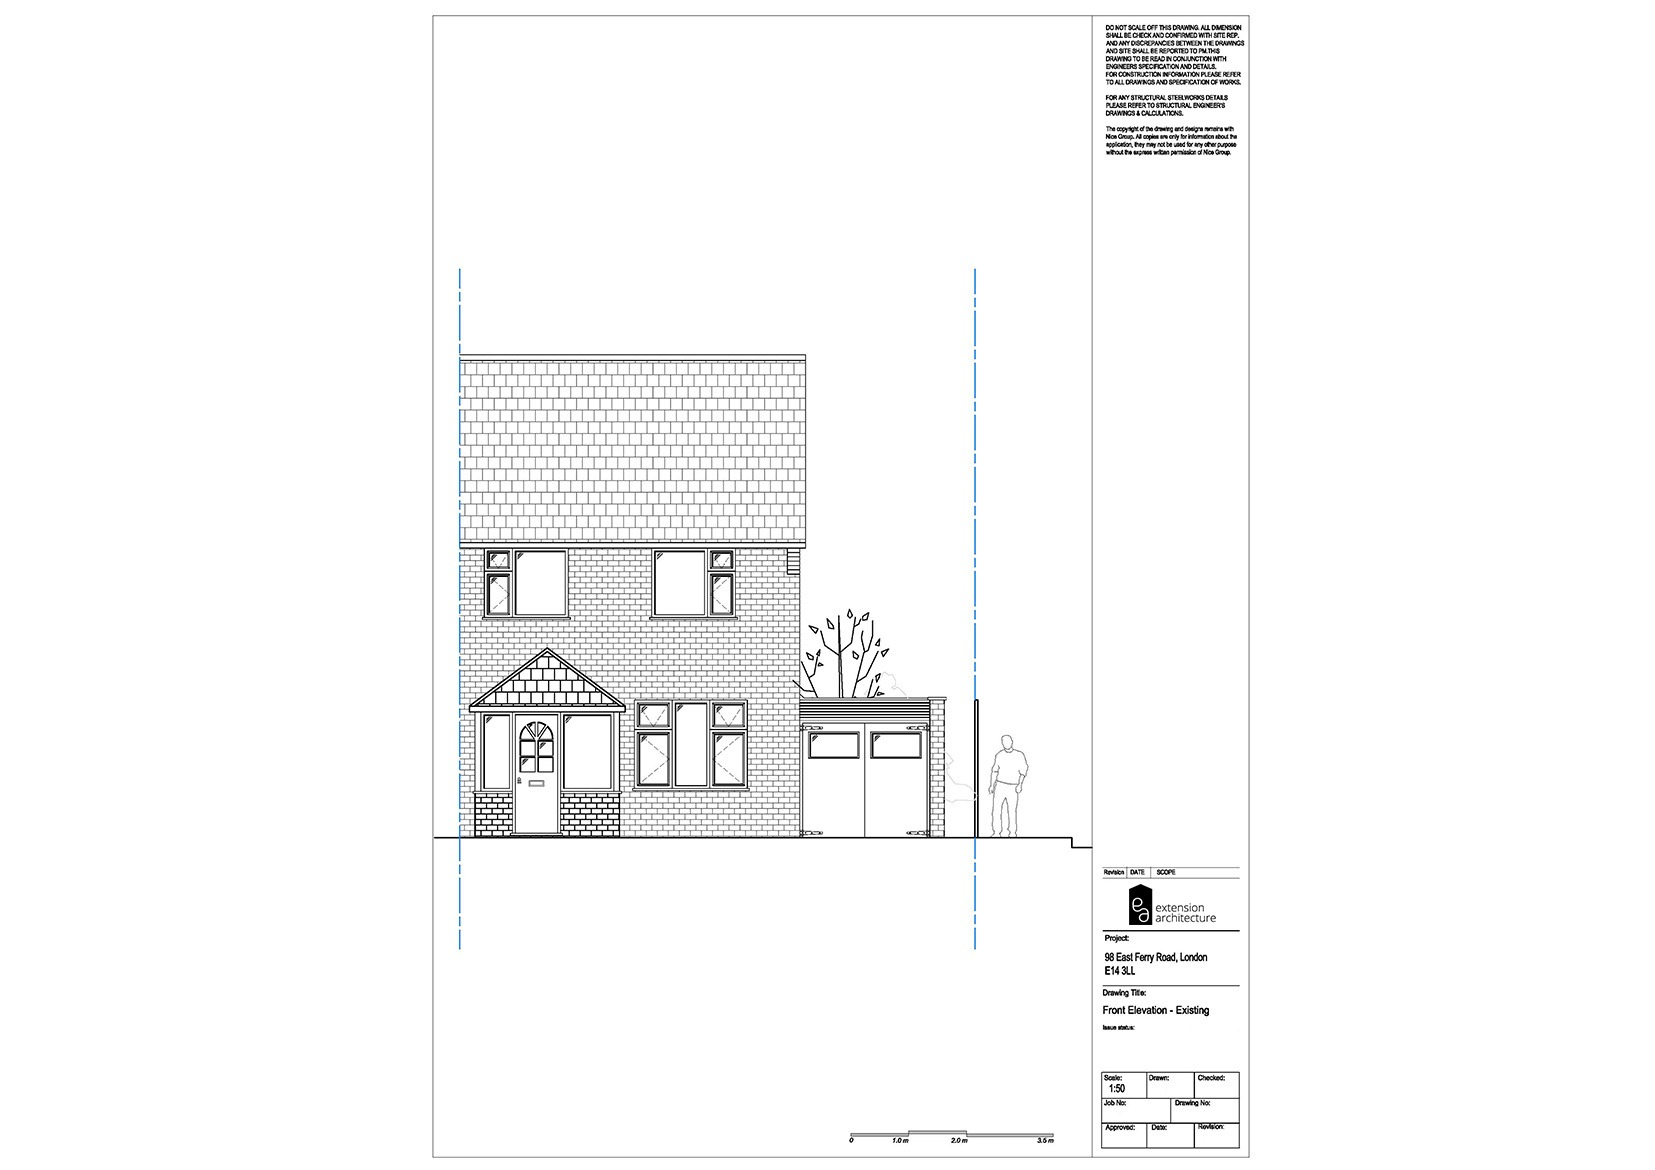 RESIDENTIAL 98 EFR existing-loft conversion...page 05